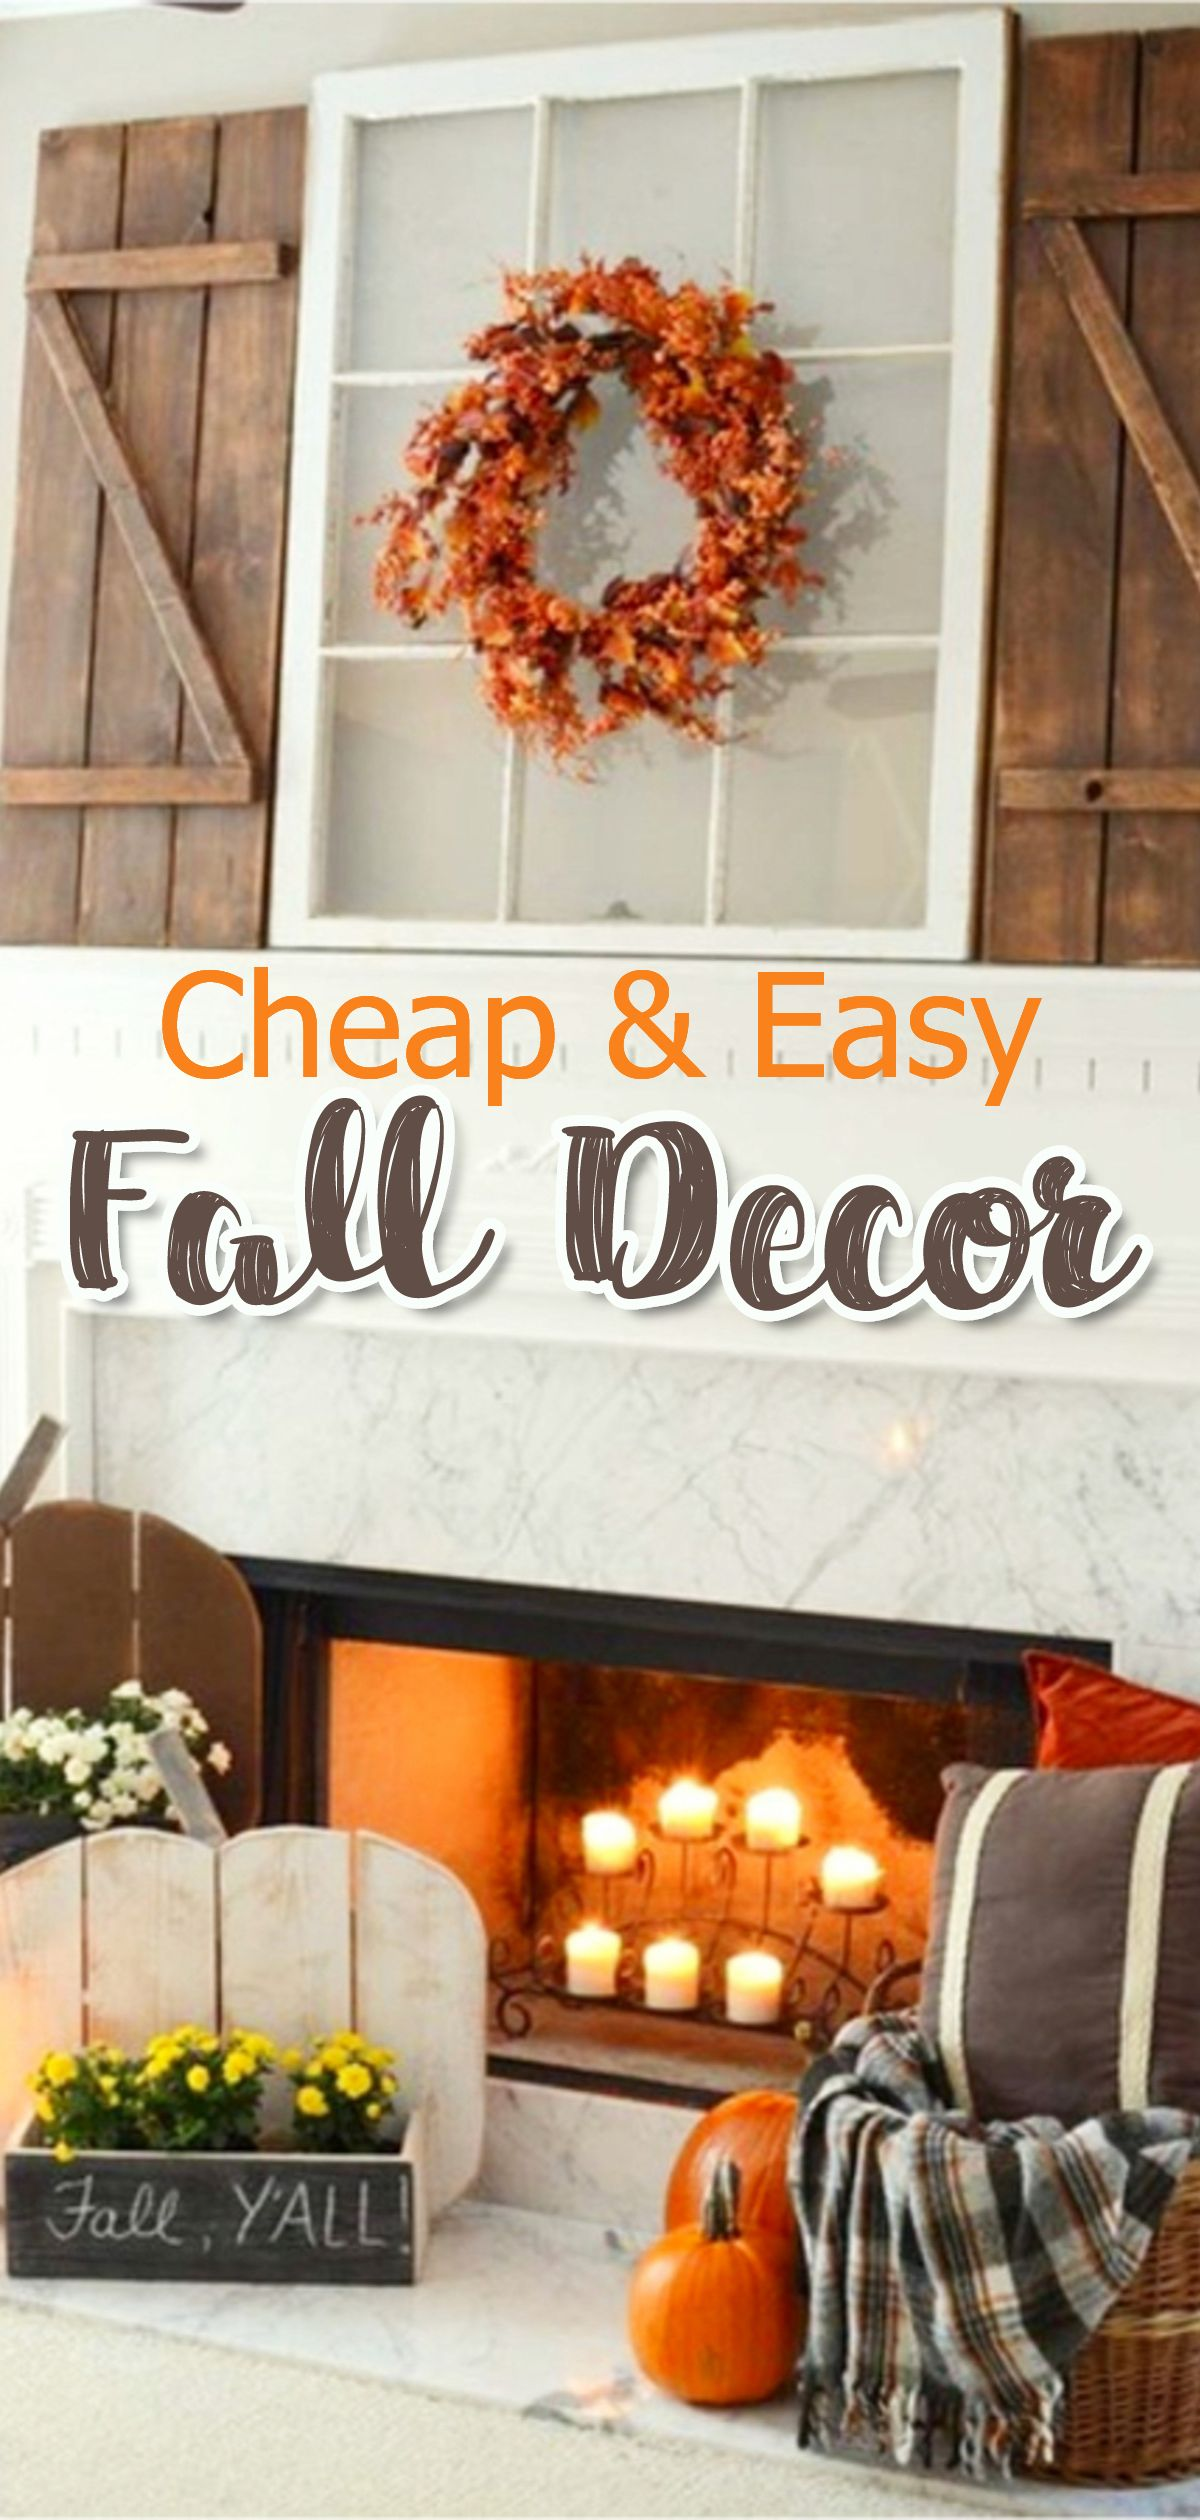 Easy Fall Decor Decorating On A Budget Try These Simple And Affordable Ideas